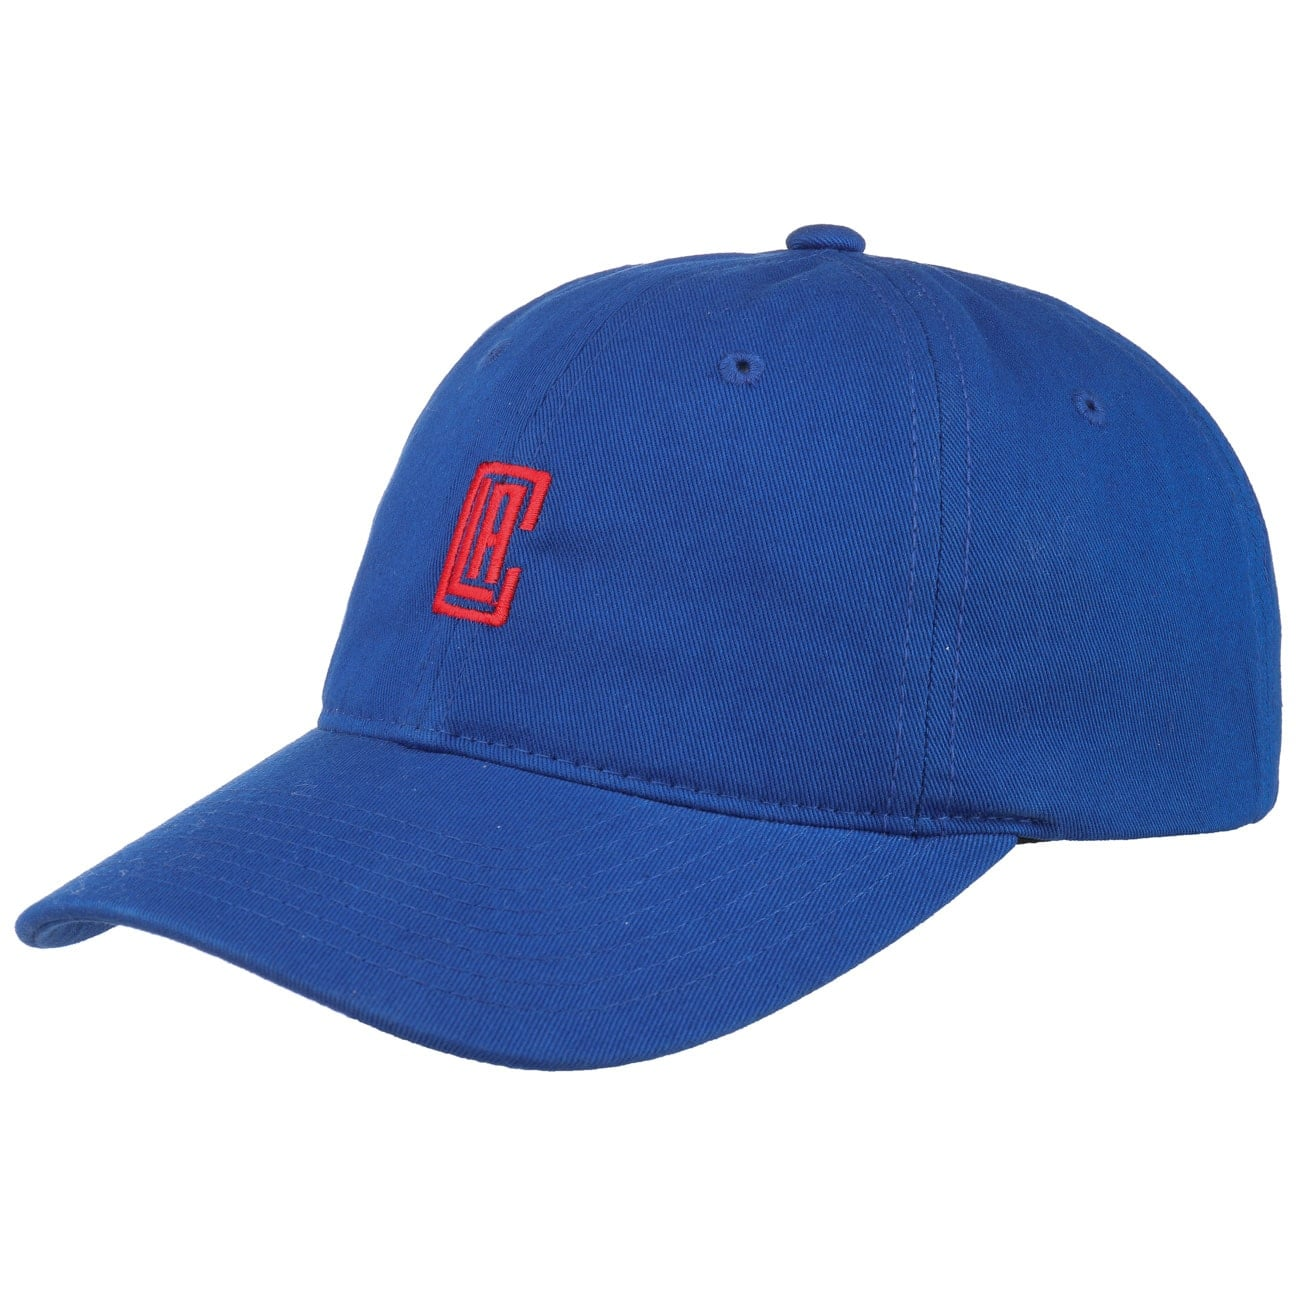 Gorra Chukker Clippers by Mitchell & Ness  gorra de baseball